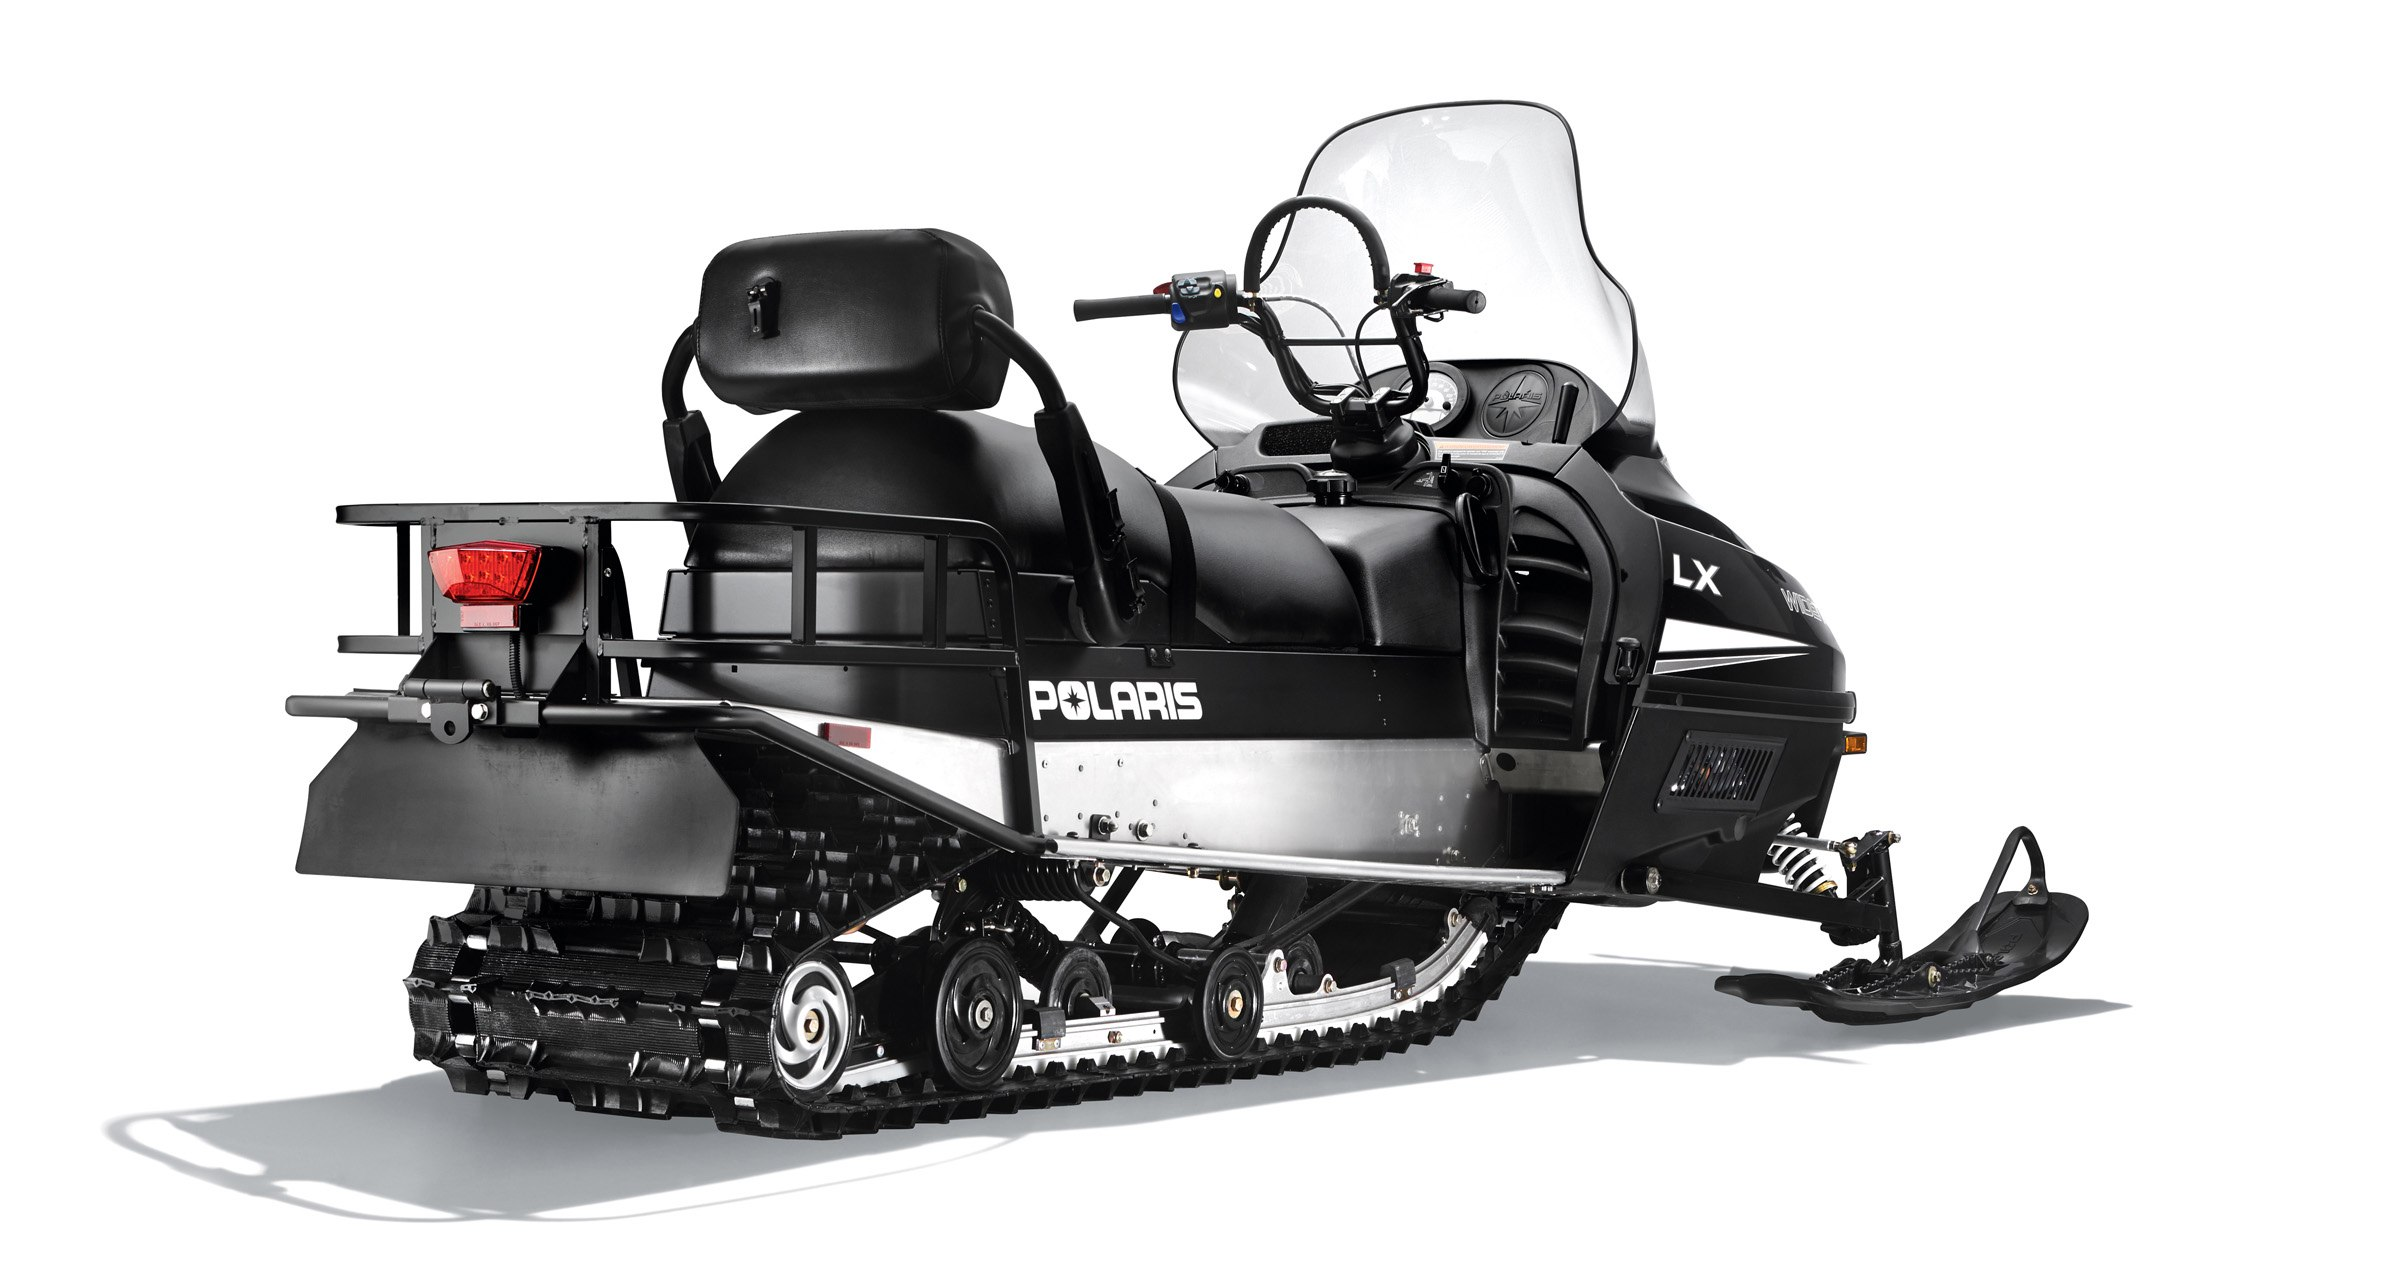 2016 Polaris 550 Widetrak LX ES in Woodstock, Illinois